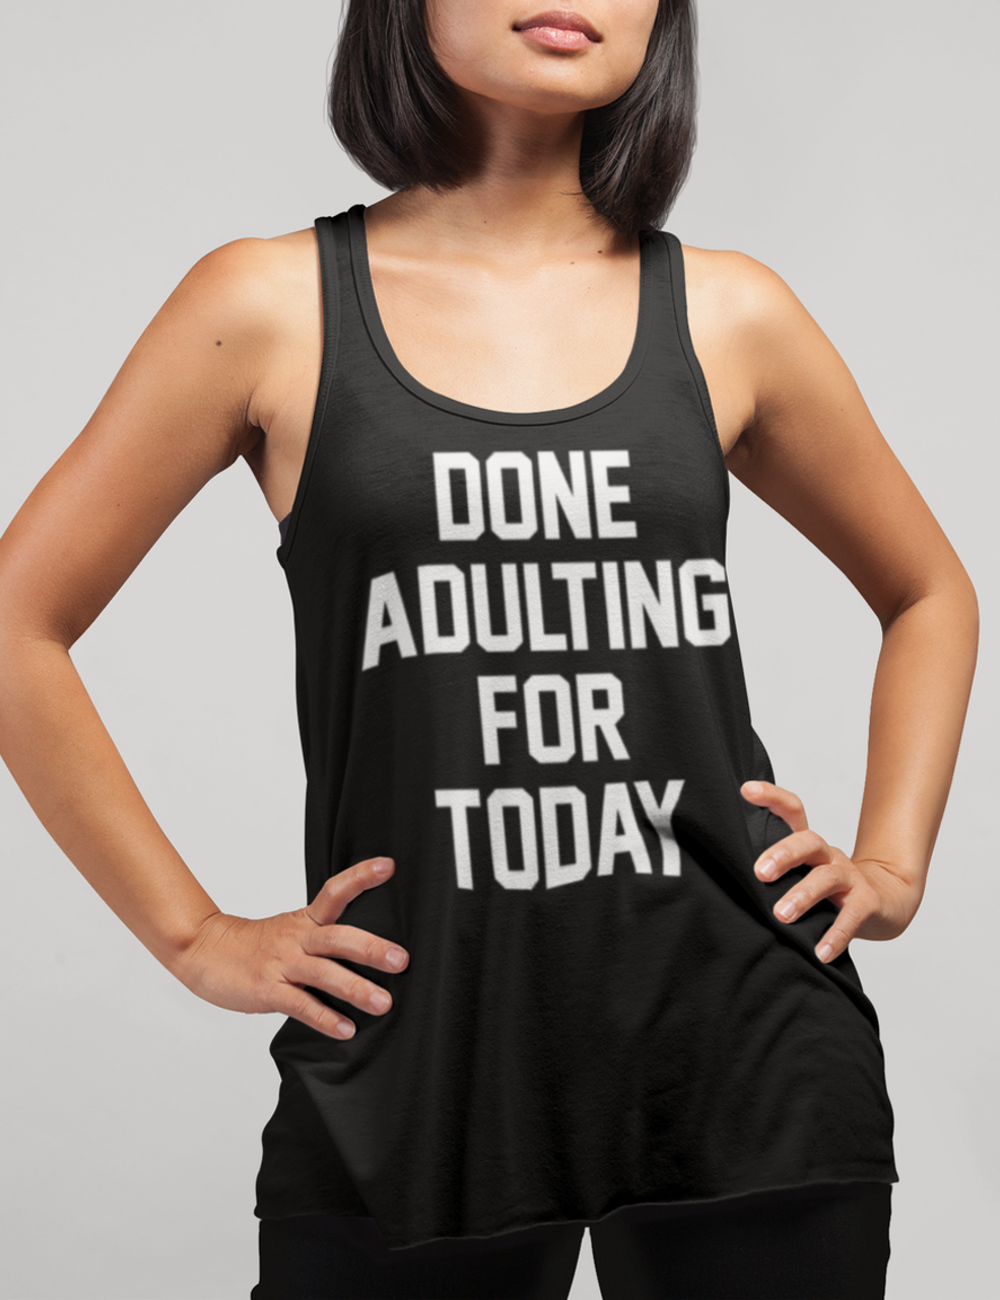 Done Adulting For Today Women's Cut Racerback Tank Top